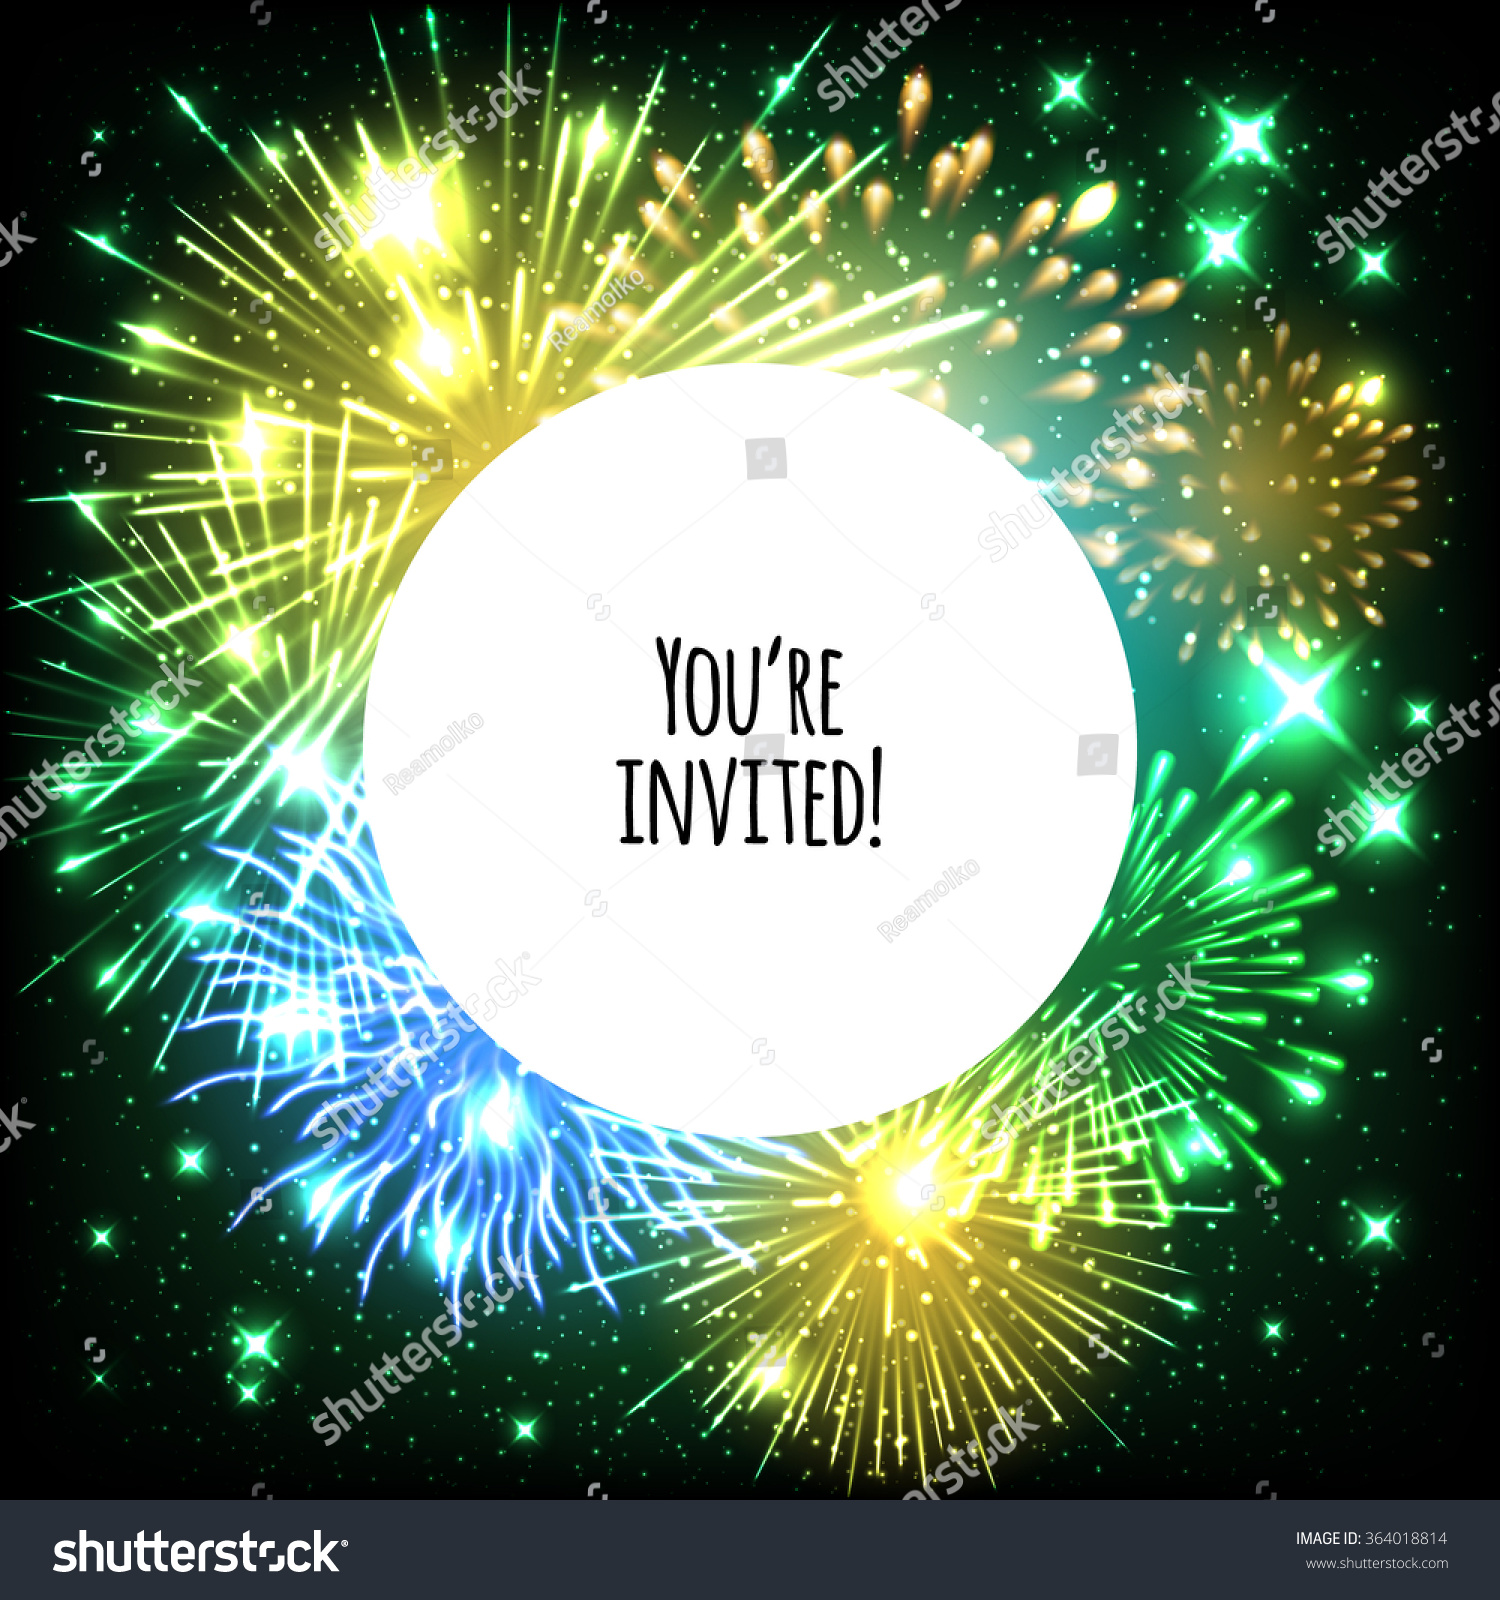 universal invitation card template design with fireworks and round frame background wedding birthday